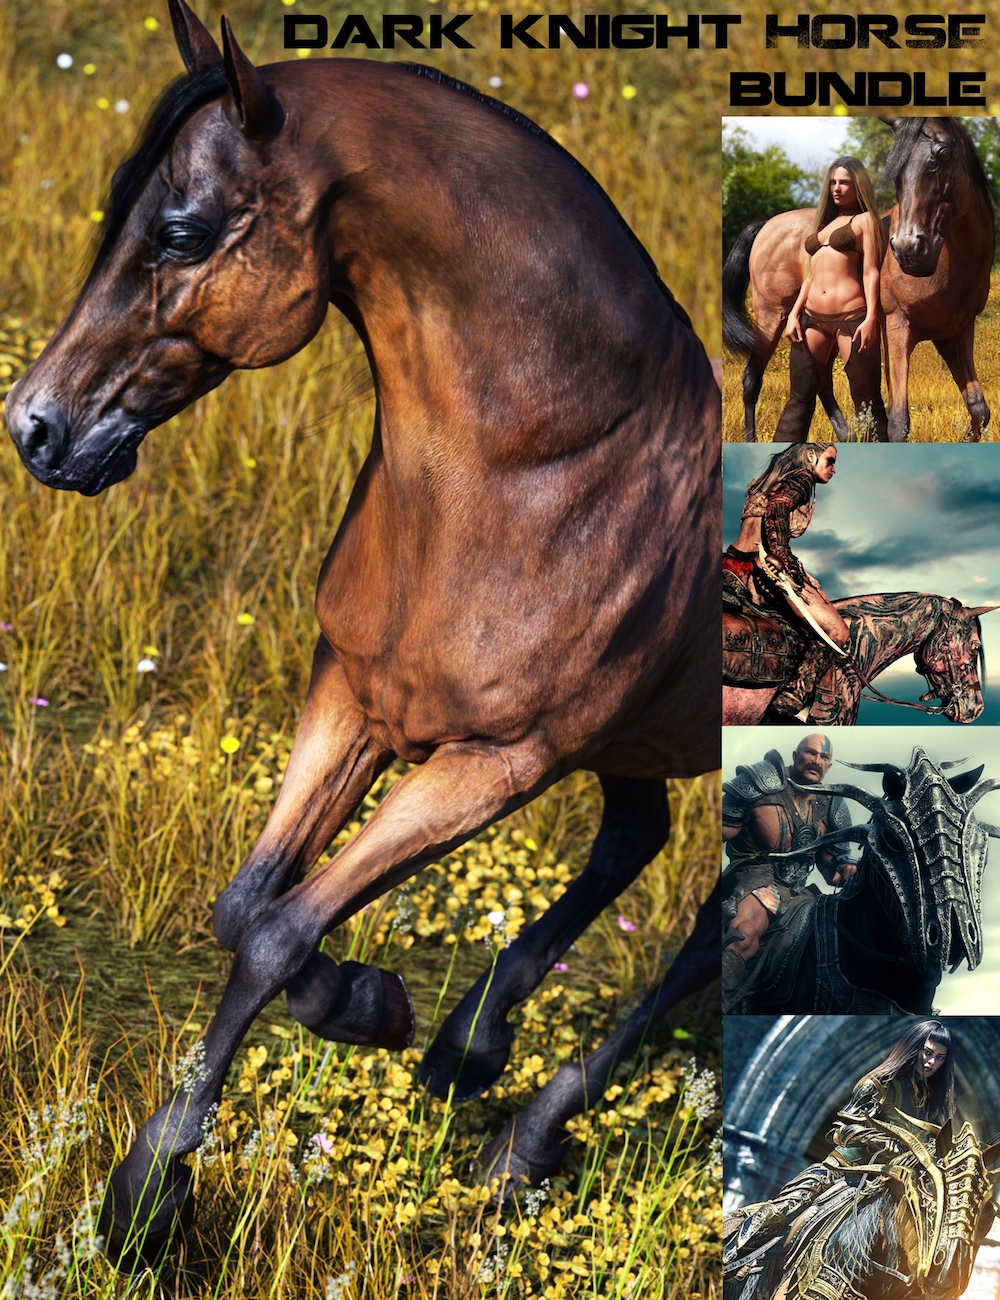 Dark Knight Horse Bundle by: Linday, 3D Models by Daz 3D